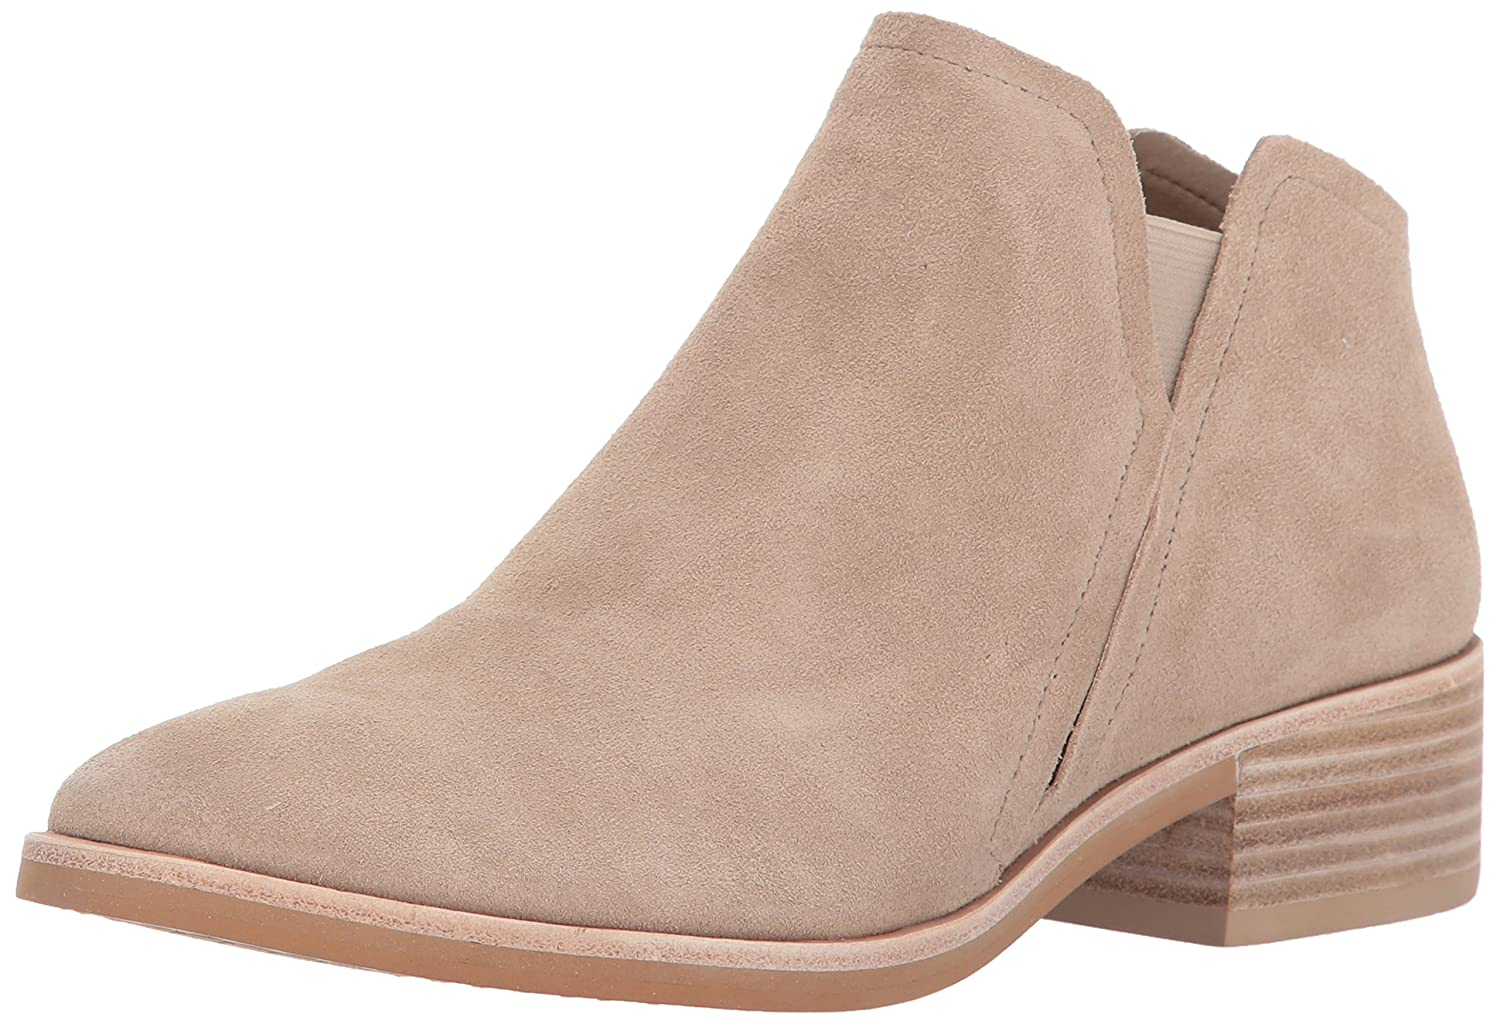 Dolce Vita Women's Tay Ankle Boot B06XGMZG6B 8.5 B(M) US|Sand Suede